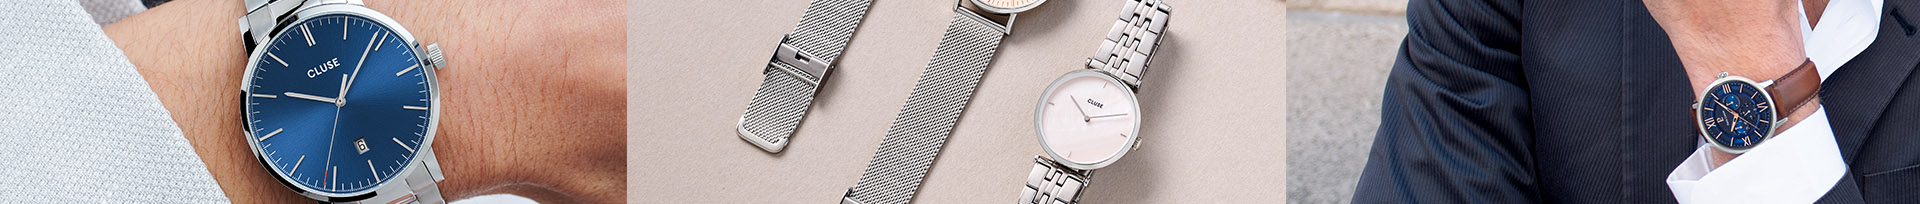 silver-watches-category-banner1.jpg